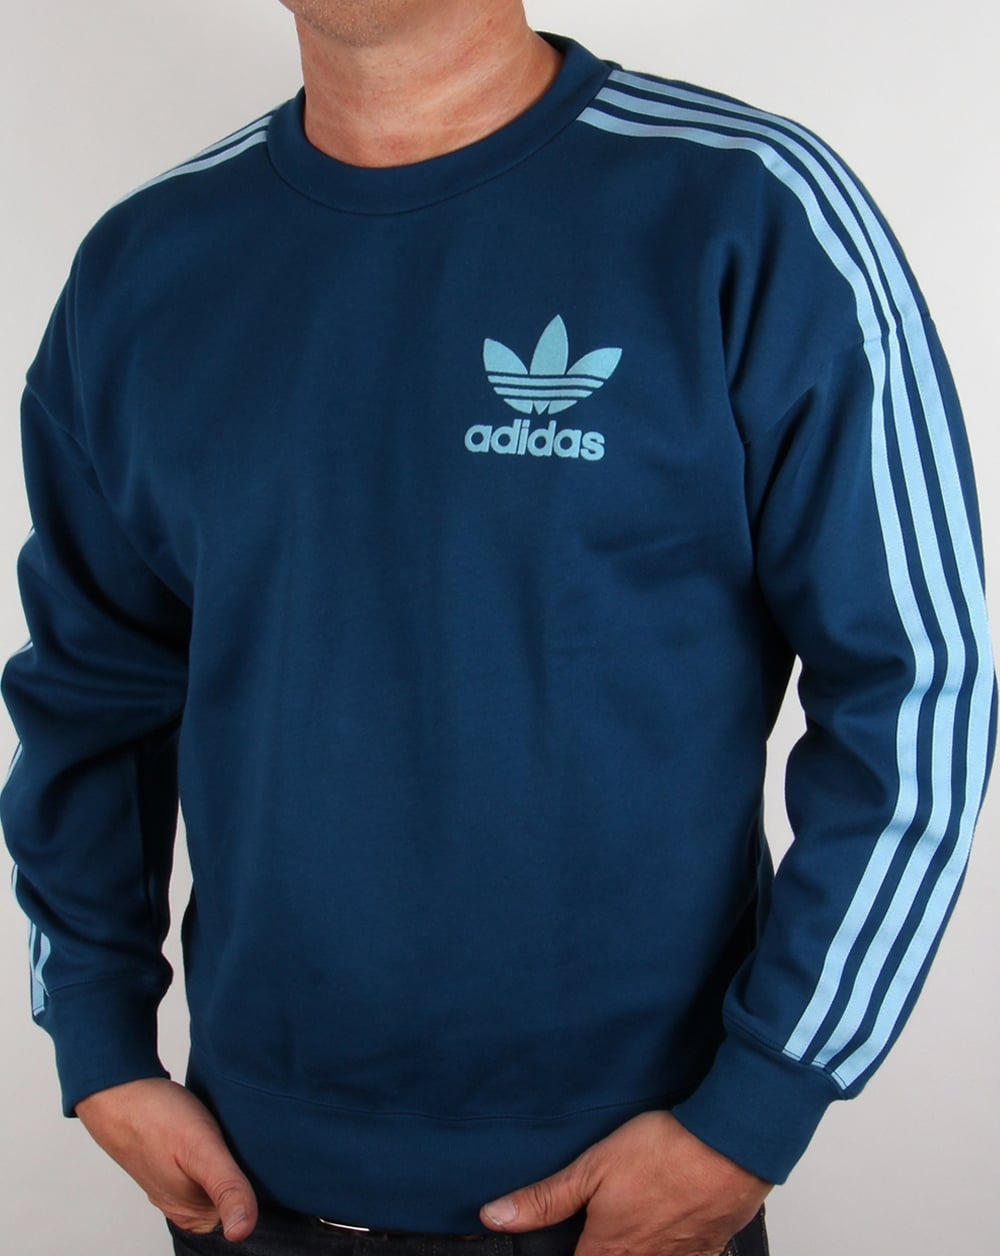 adidas original jumper